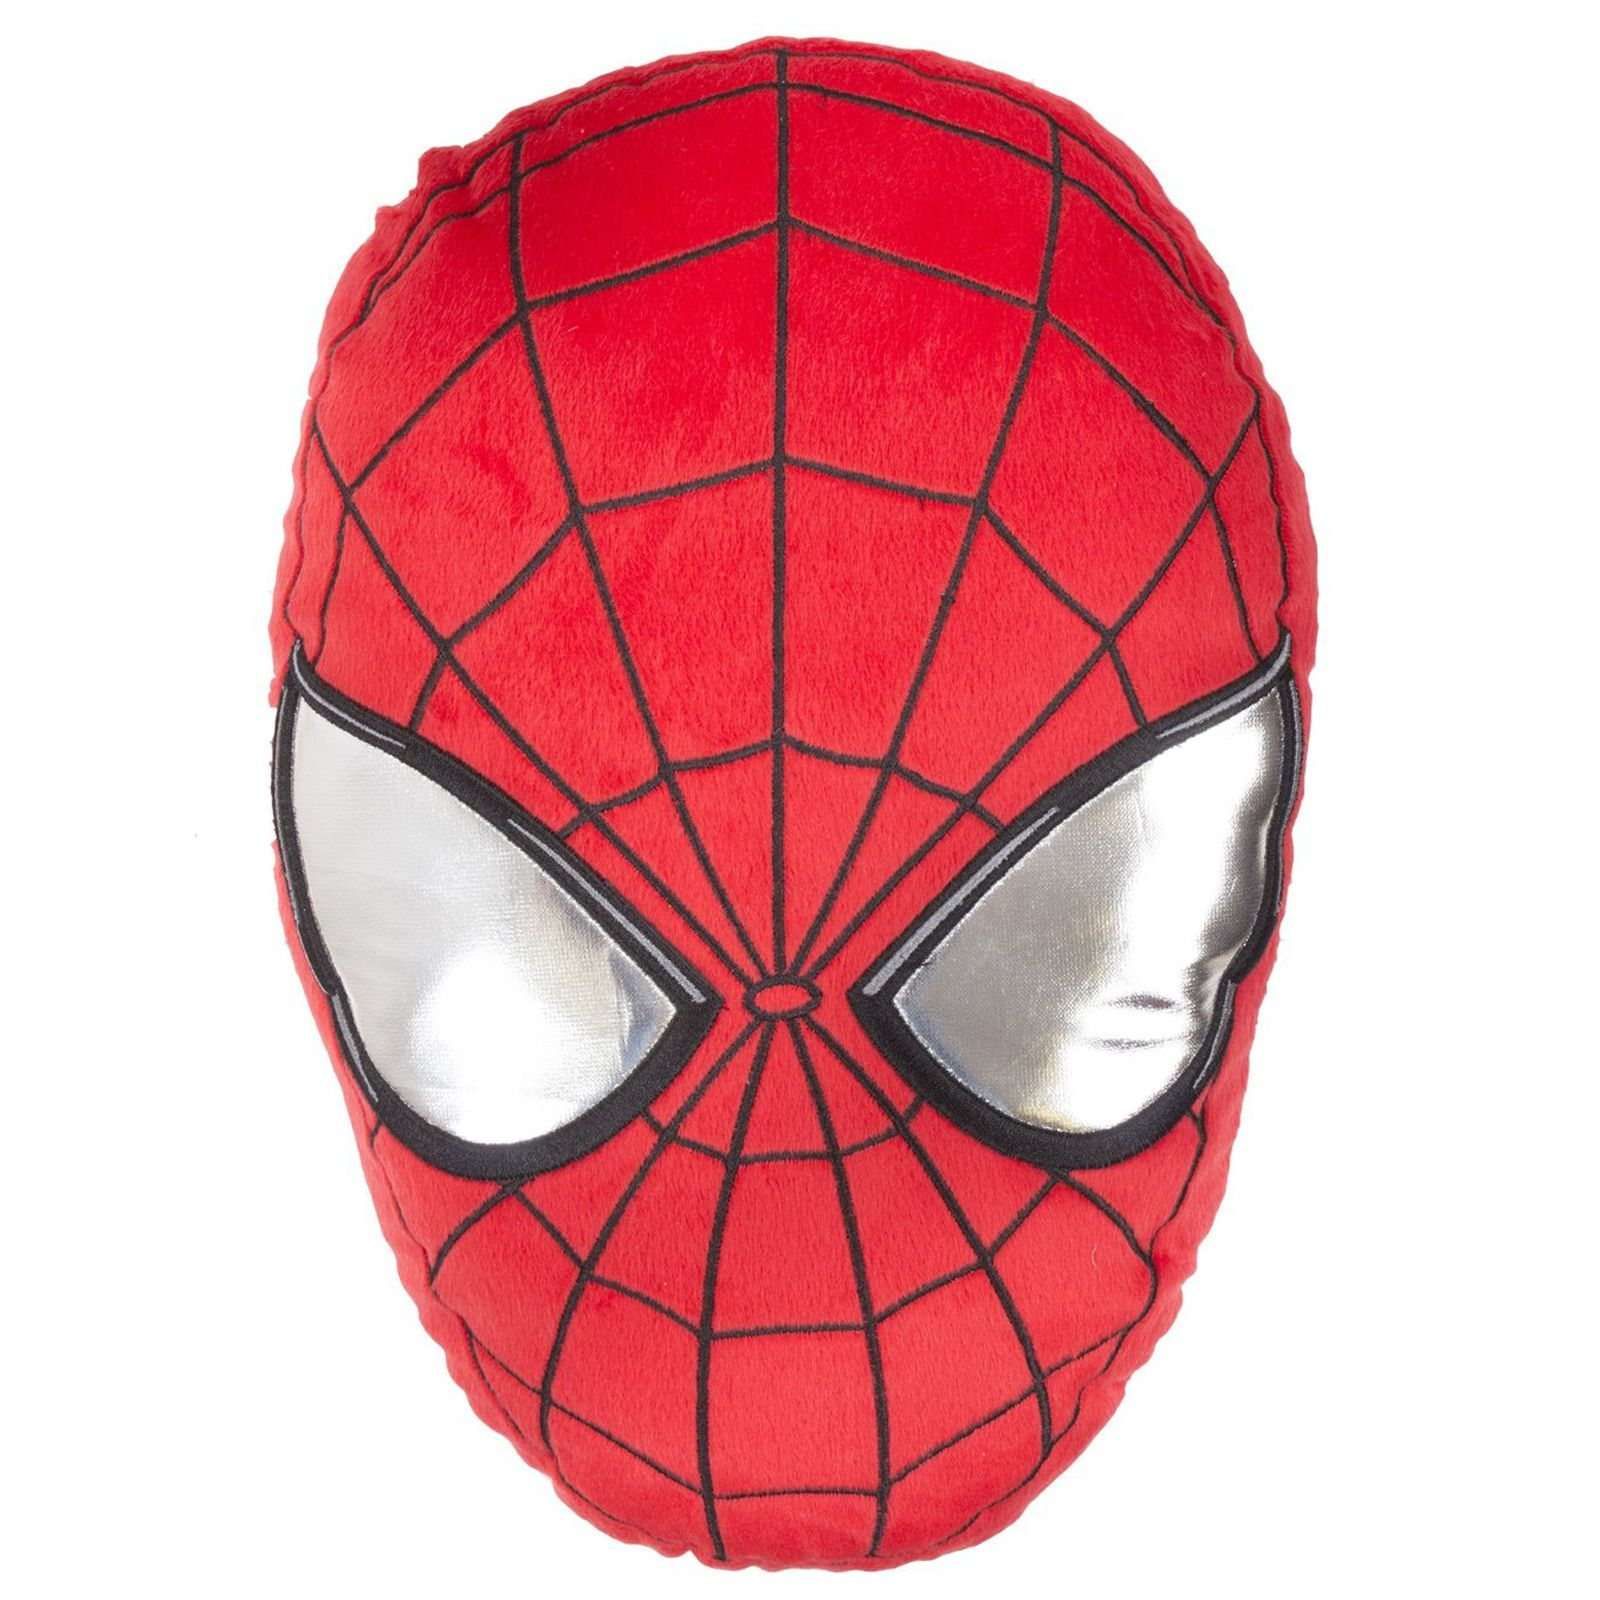 SPIDER-MAN HEAD-SHAPED CUSHION NEW SPIDERMAN MARVEL ...